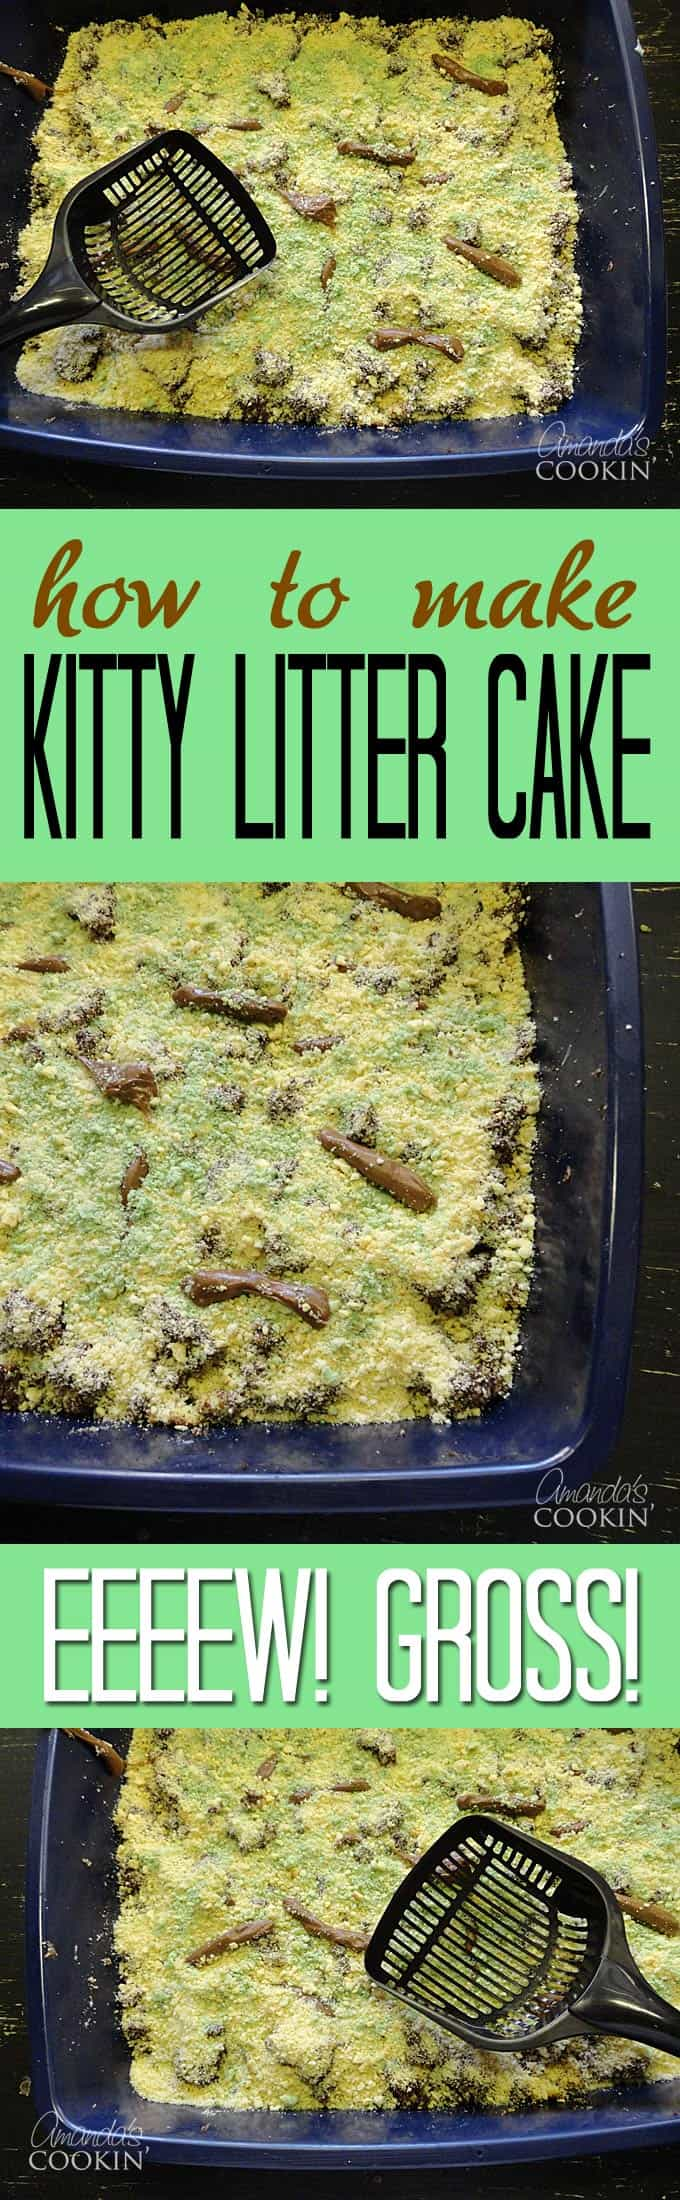 A close up overhead photo of a kitty litter cake.